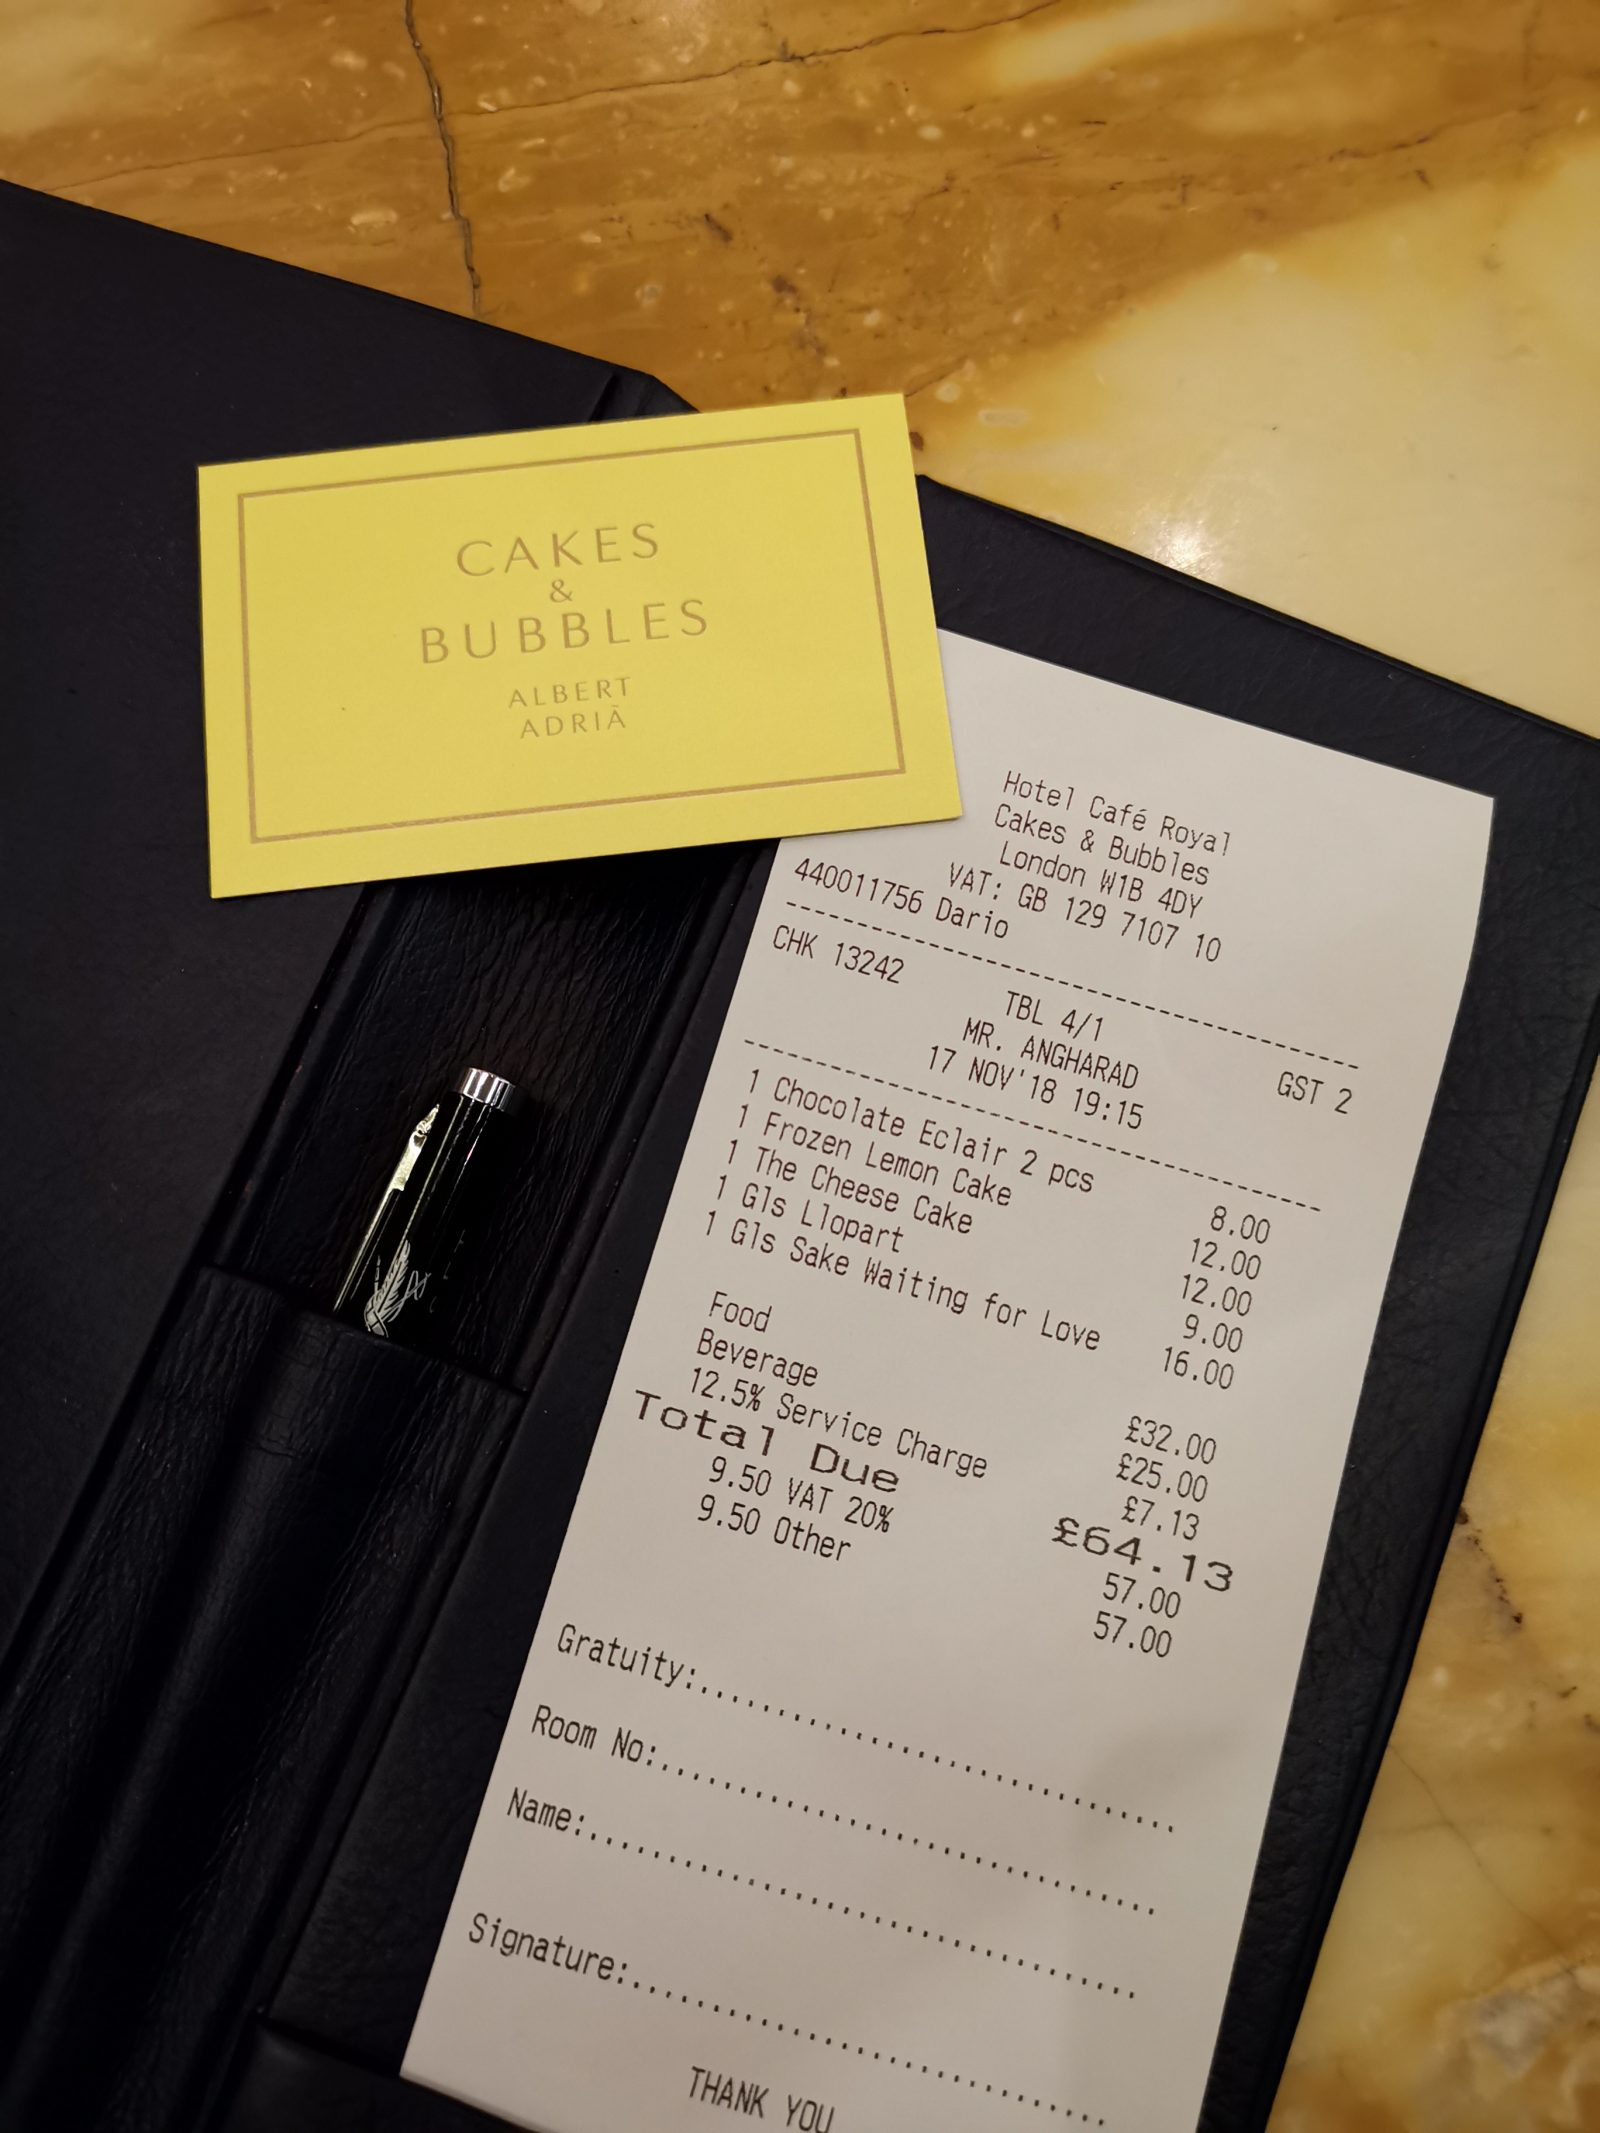 The bill for cakes and bubbles - hotel cafe royal london